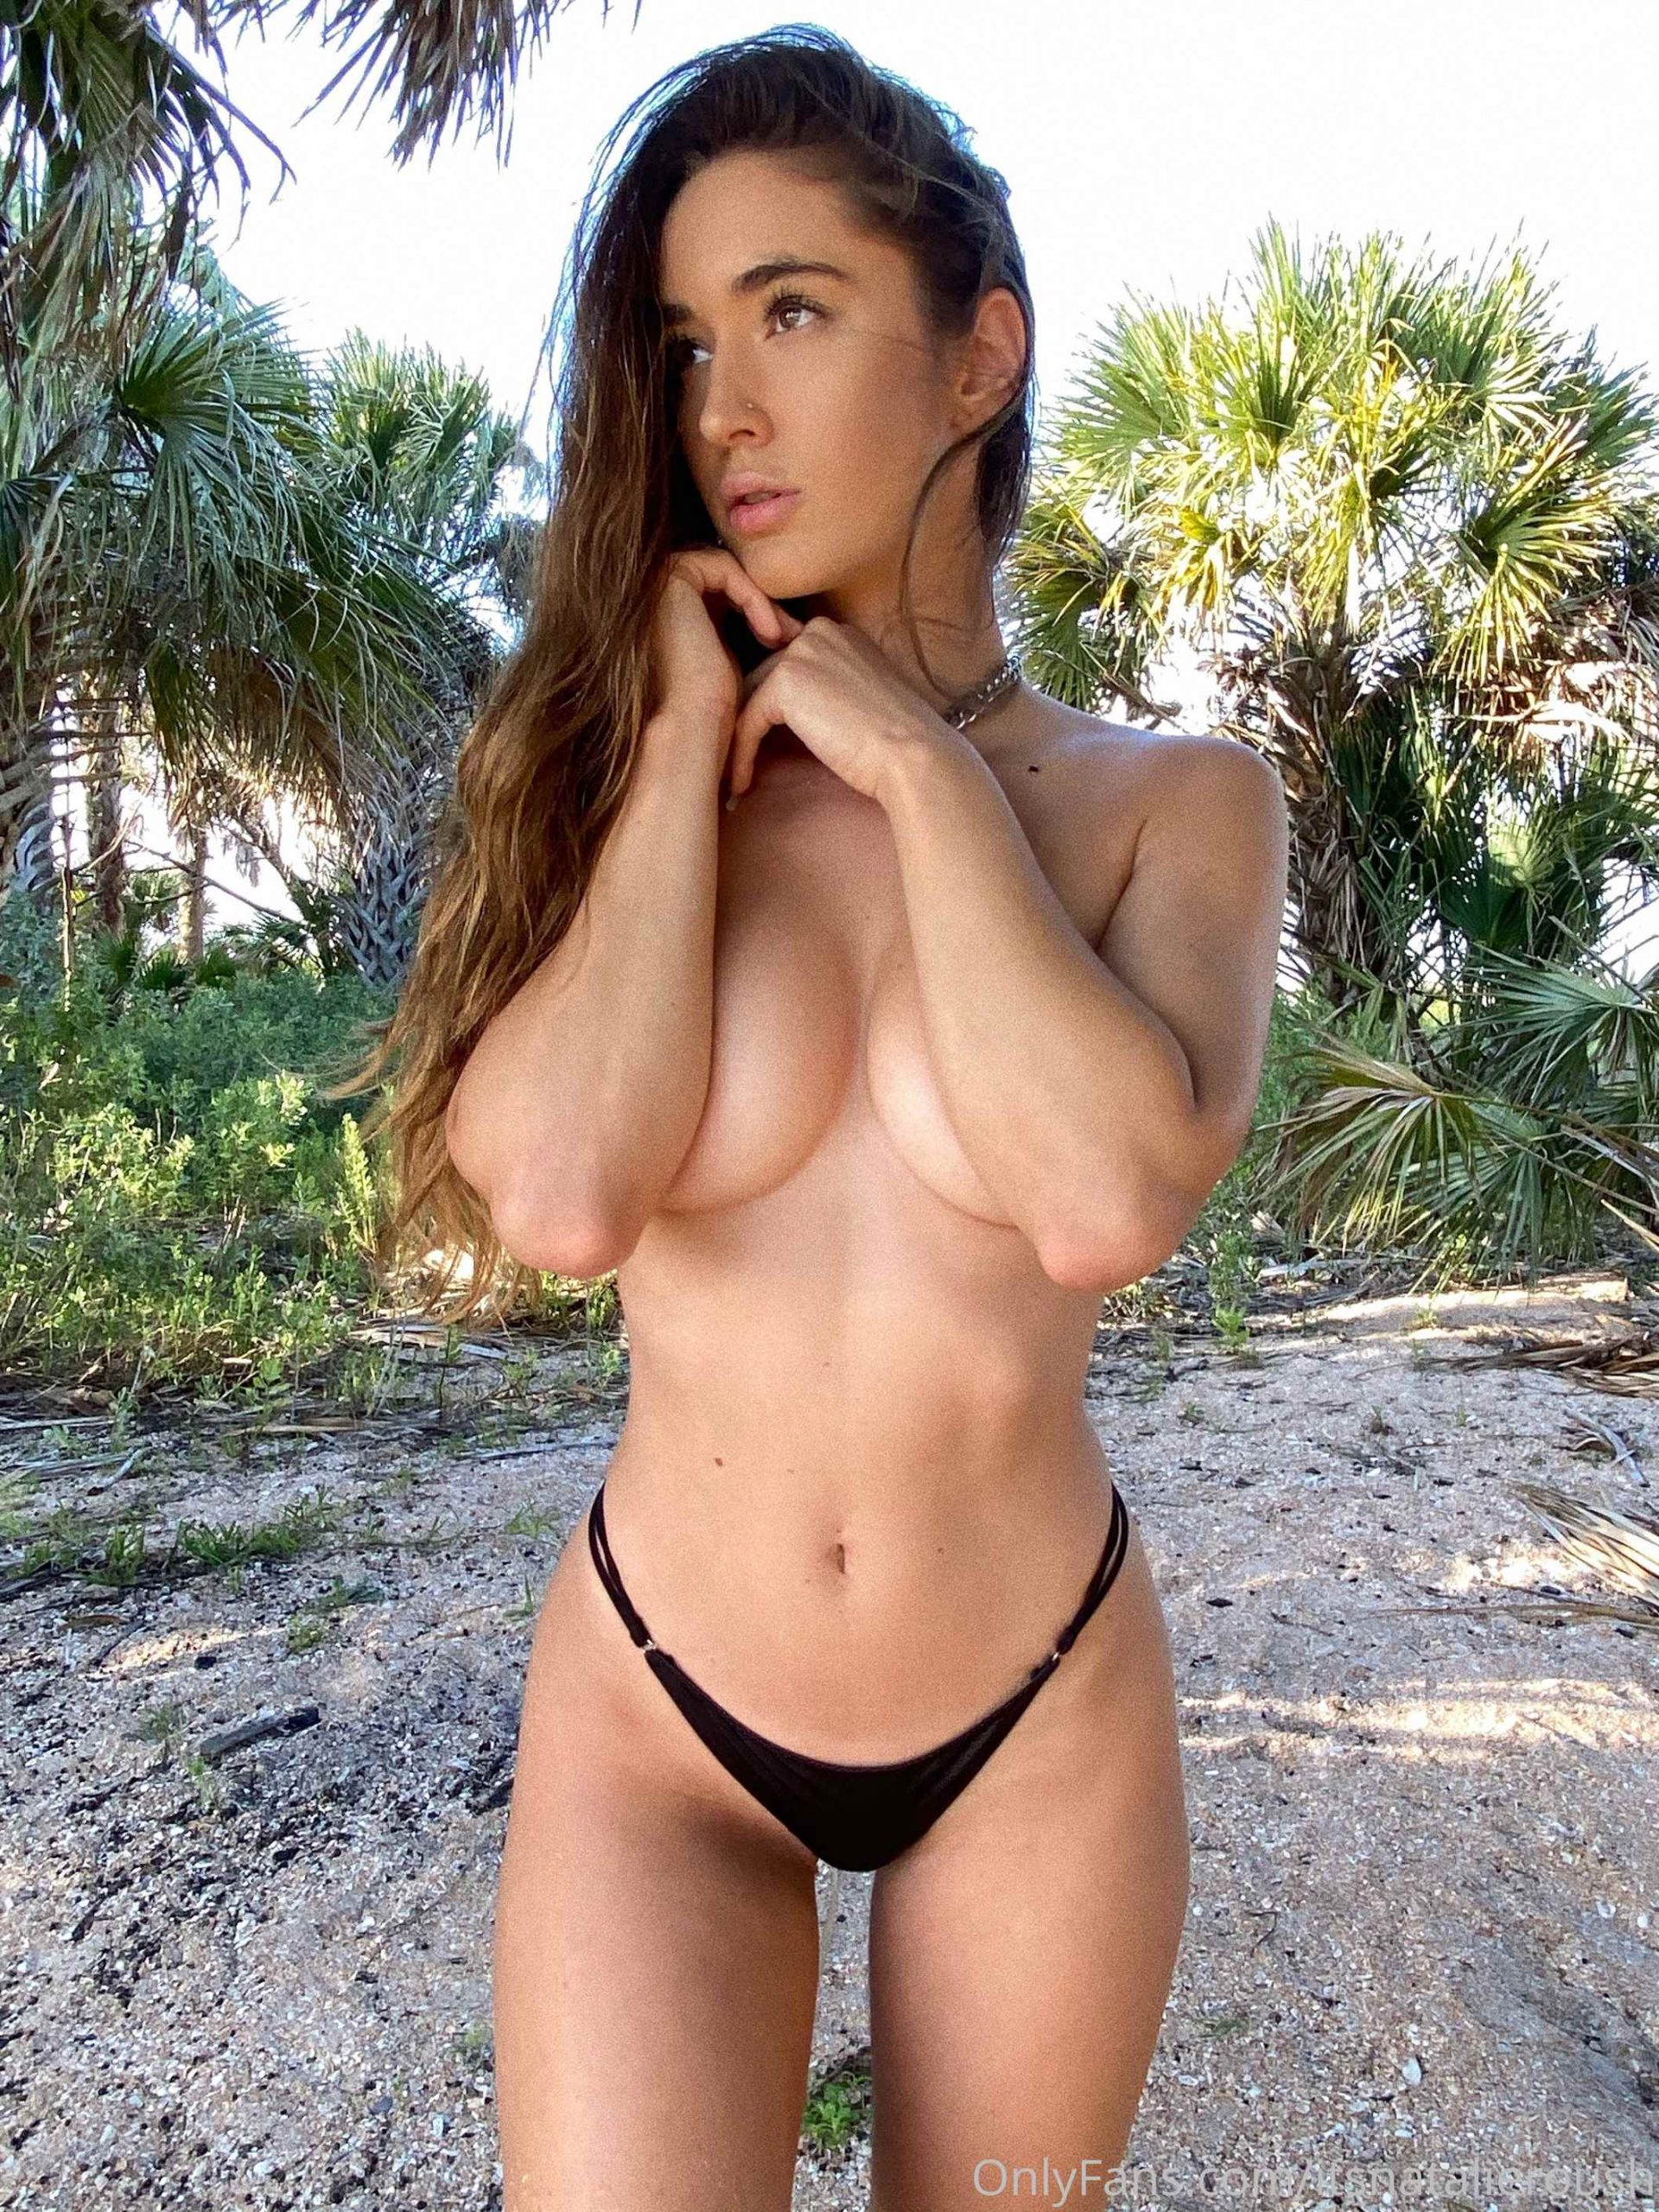 Natalie Roush Nude Leaked Onlyfans Photos 0037